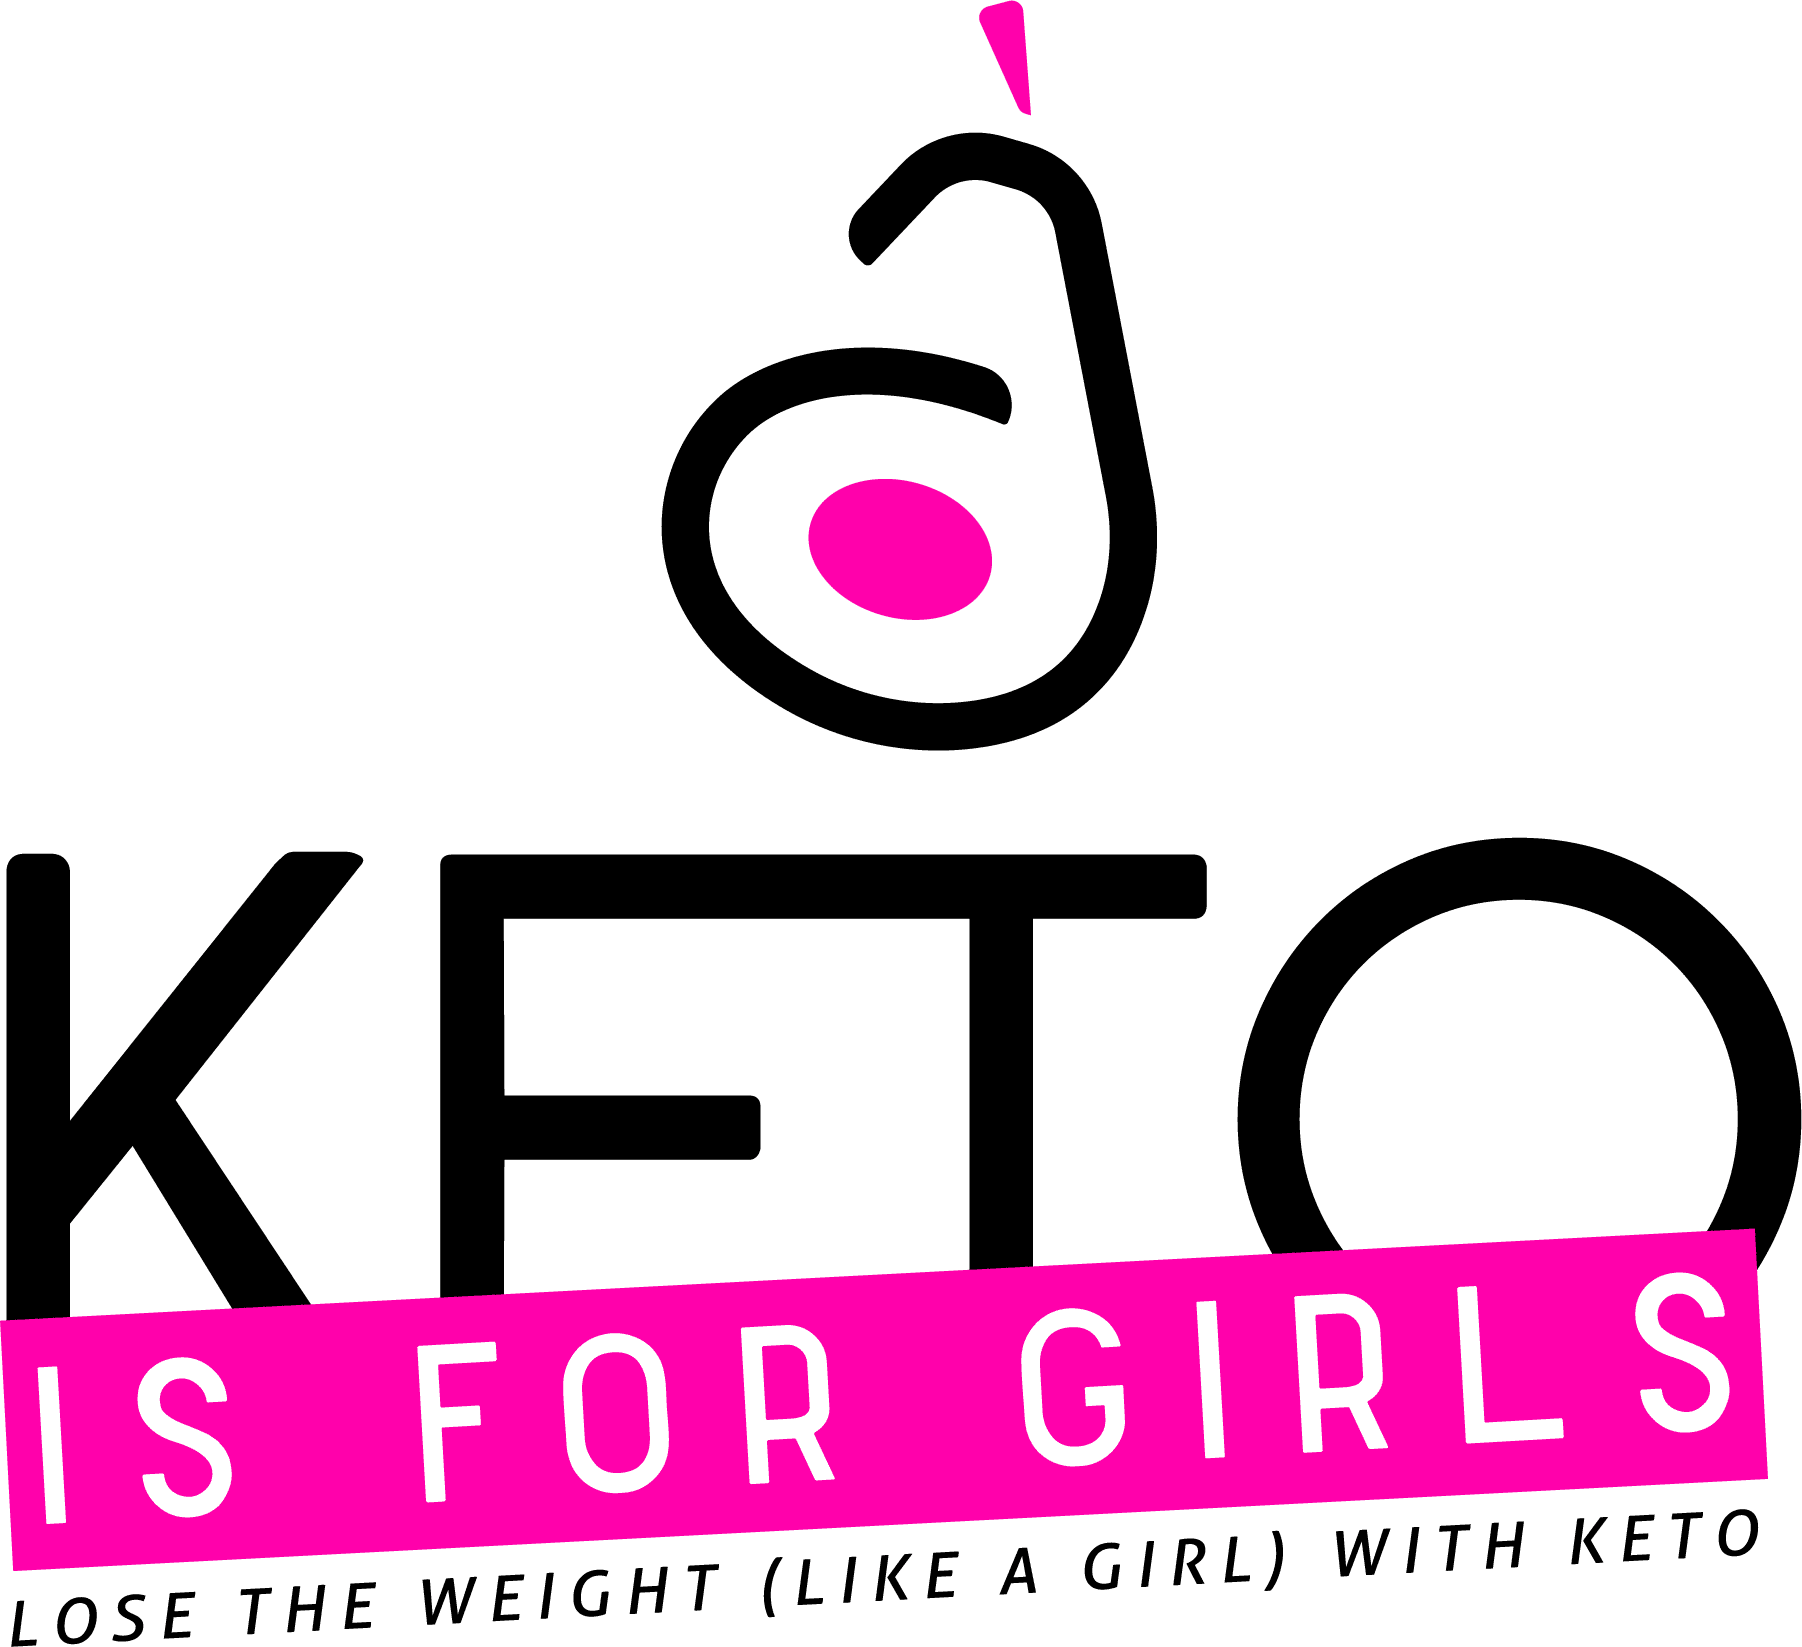 Keto is for Girls4.1